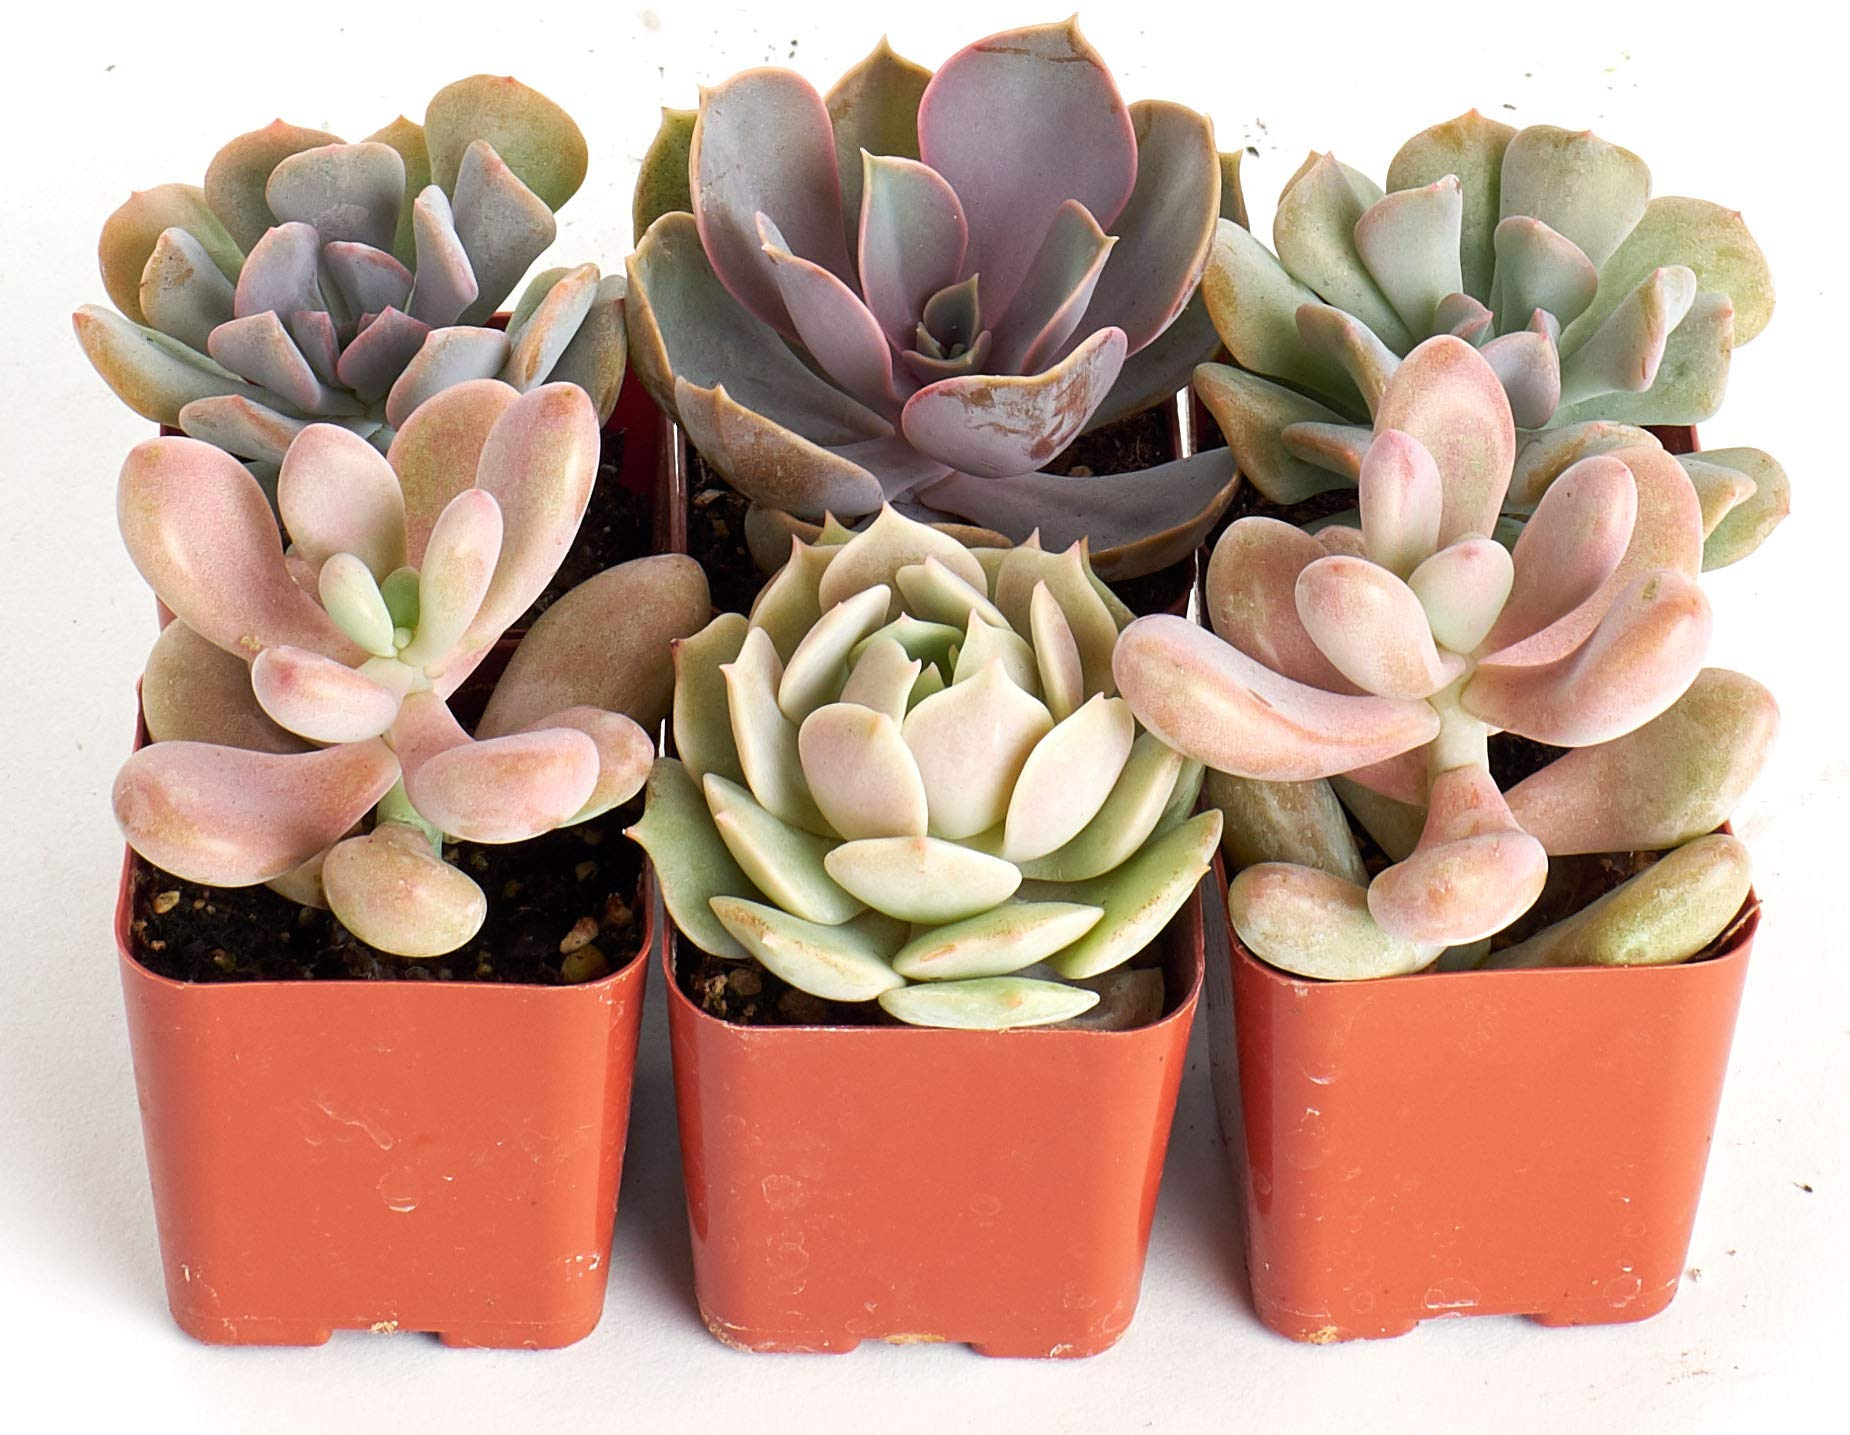 Shop Succulents | It's A Girl! Pink Collection of Live Succulent Plants, Hand Selected Variety Pack of Mini Succulents in Pastel Pink Colors | Collection of 6